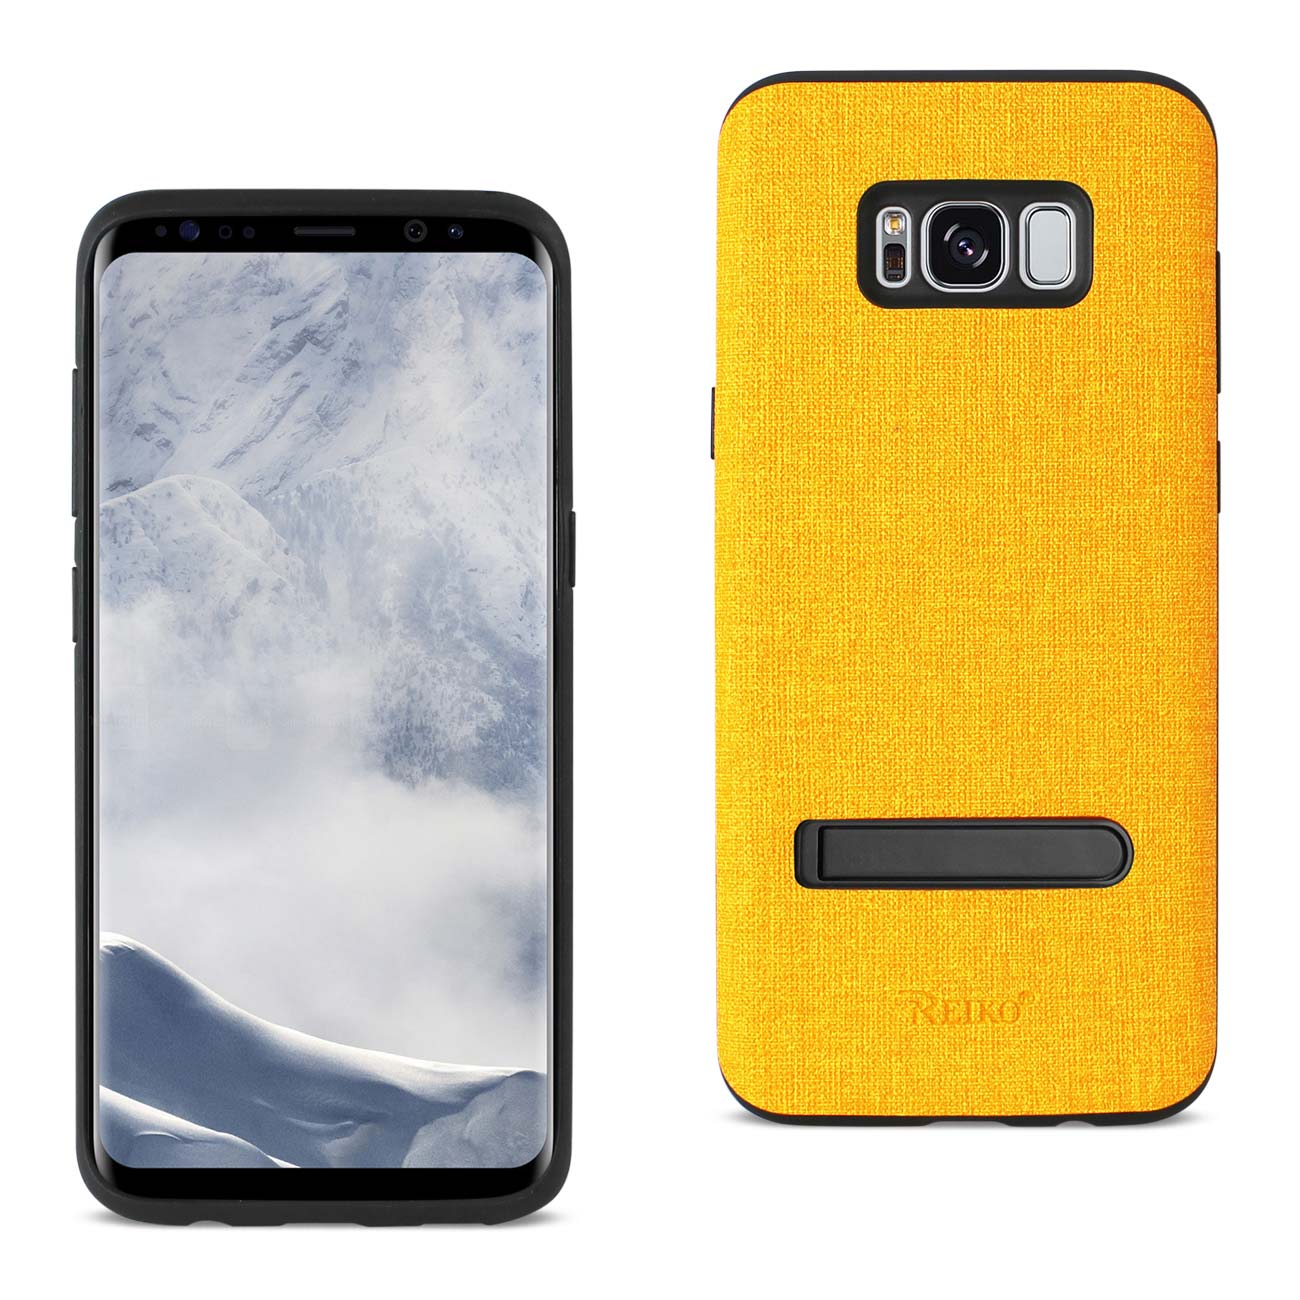 REIKO SAMSUNG GALAXY S8/ SM DENIM TEXTURE TPU PROTECTOR COVER IN YELLOW